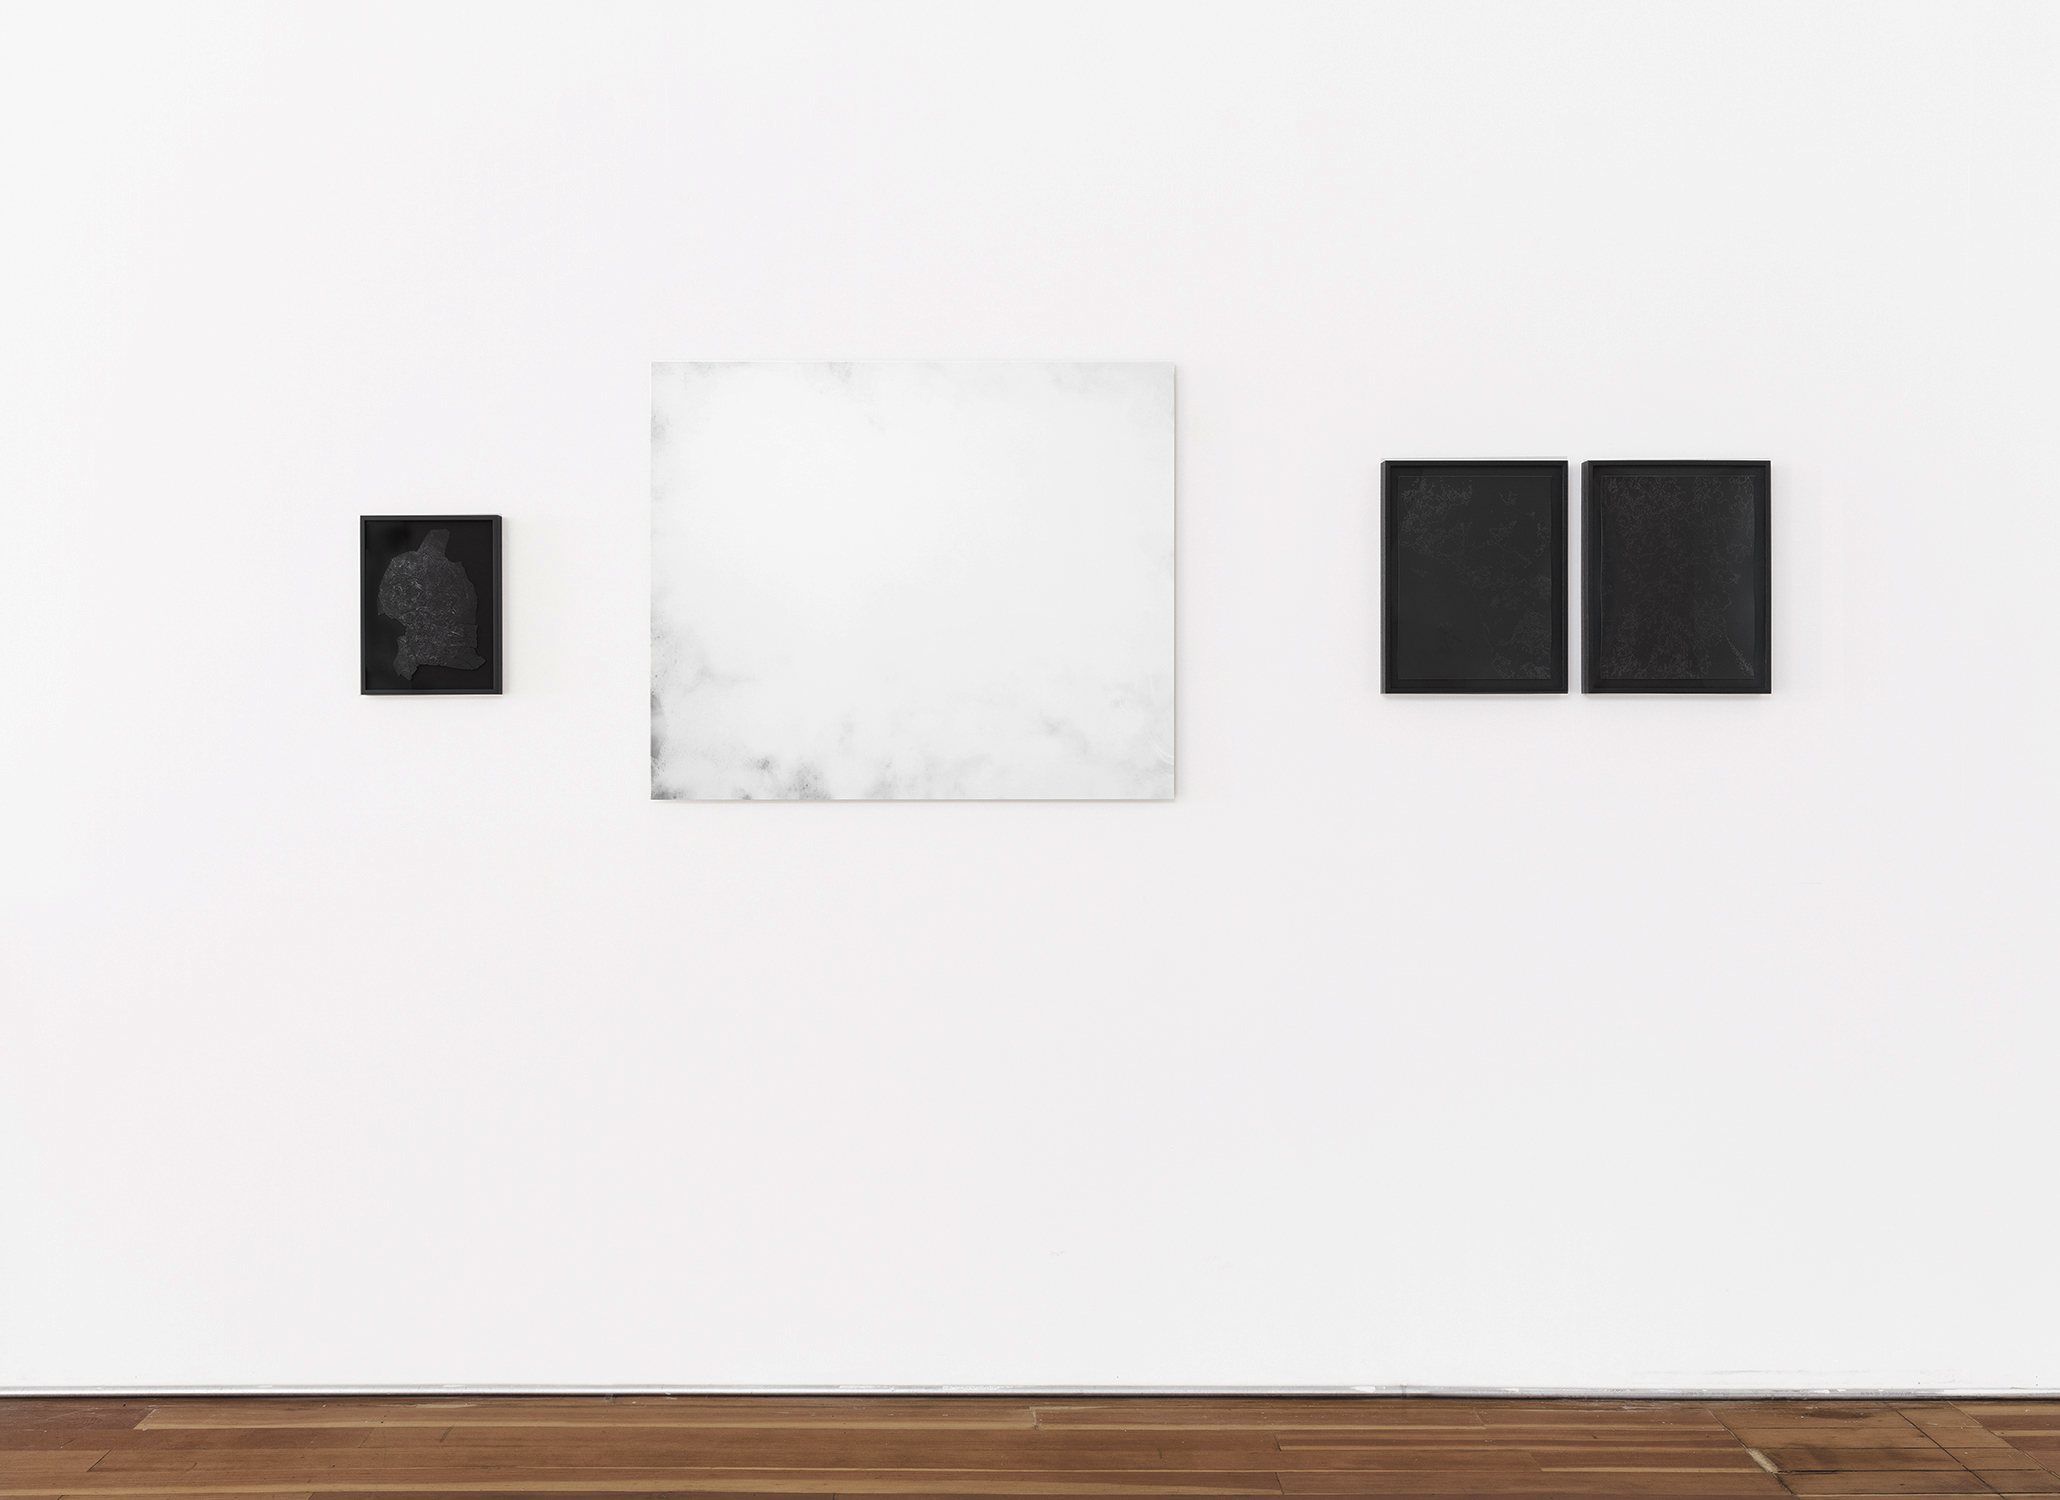 Jennifer Brandon's installation of  Equivalent I (middle),  Andréanne Michon's installation of  Disappearing Landscapes  (right) and  Embossing with Transfer 1  (left).